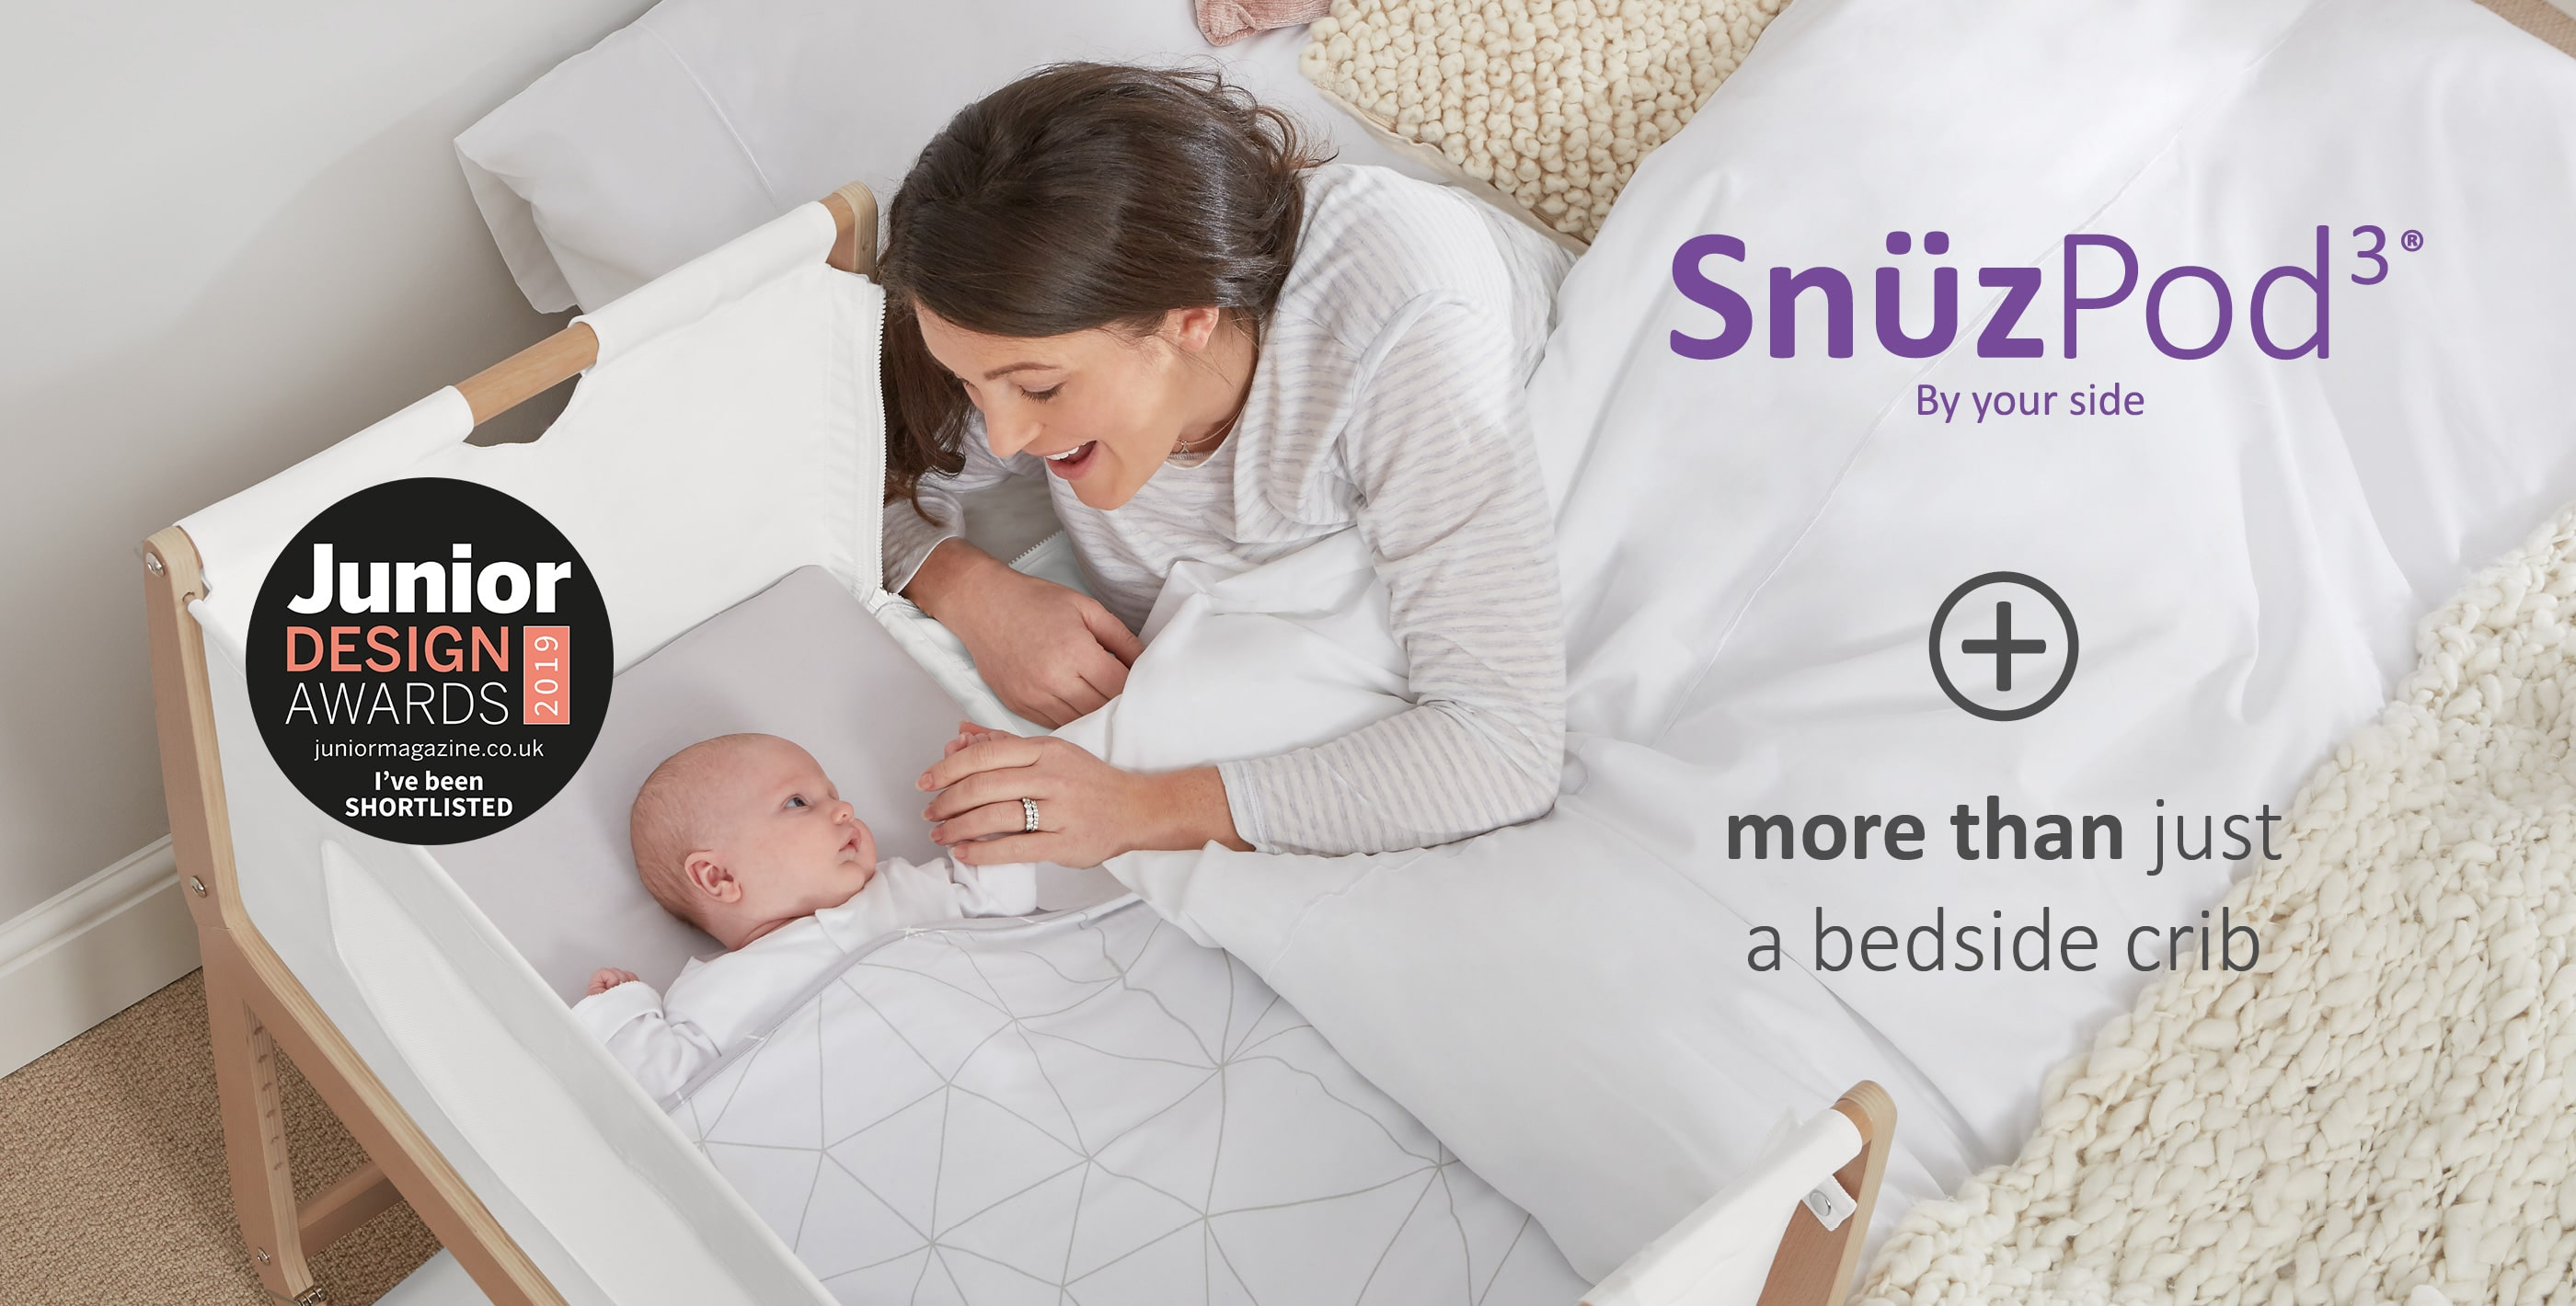 SnuzPod Bedside Crib Junior Design Awards